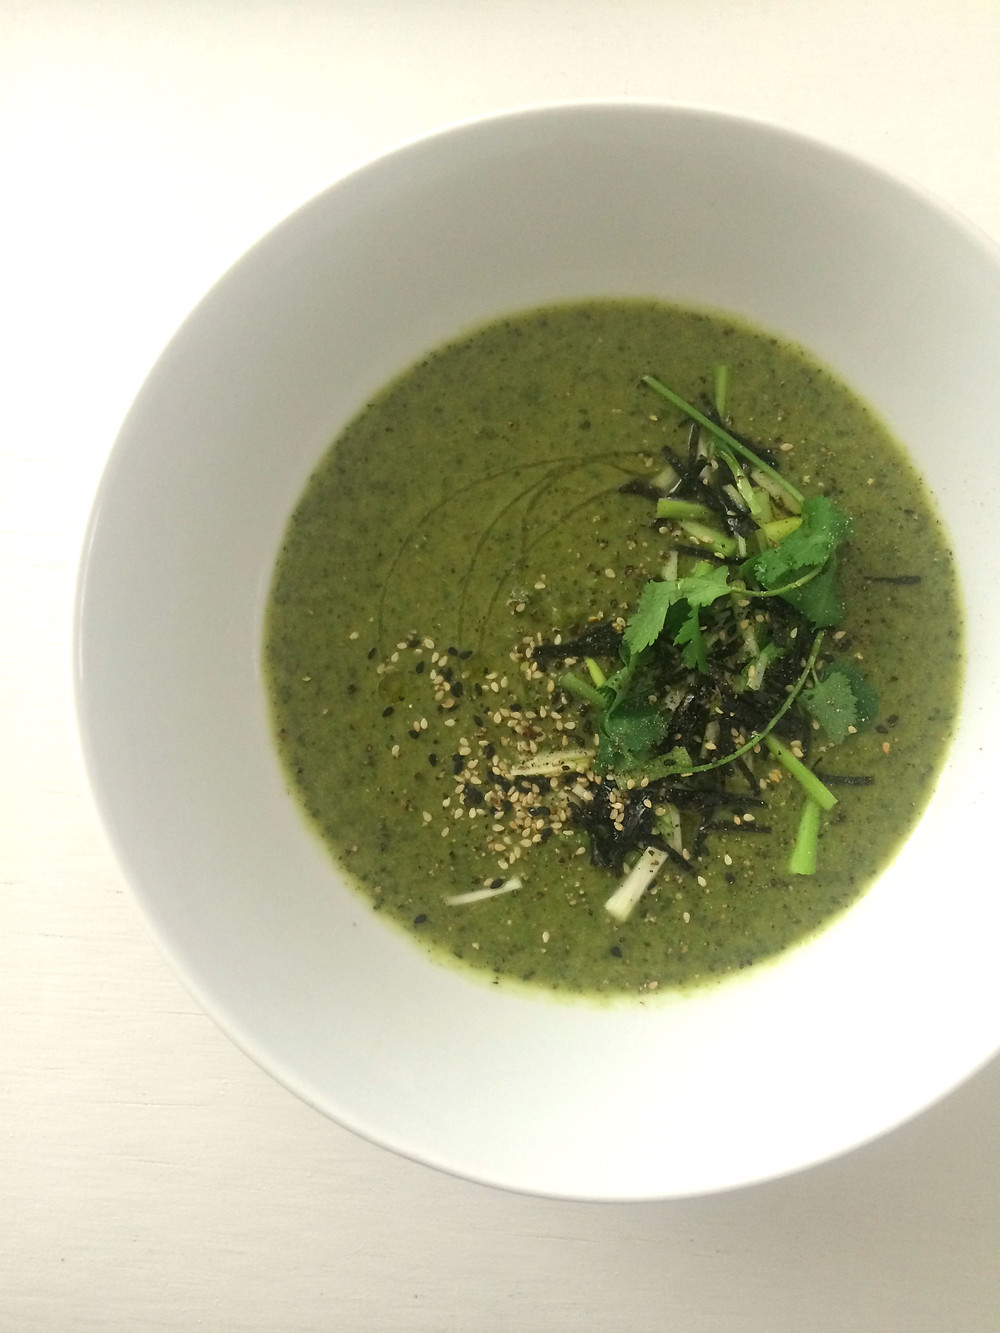 Broccoli soup topped with sesame seeds, nori and coriander